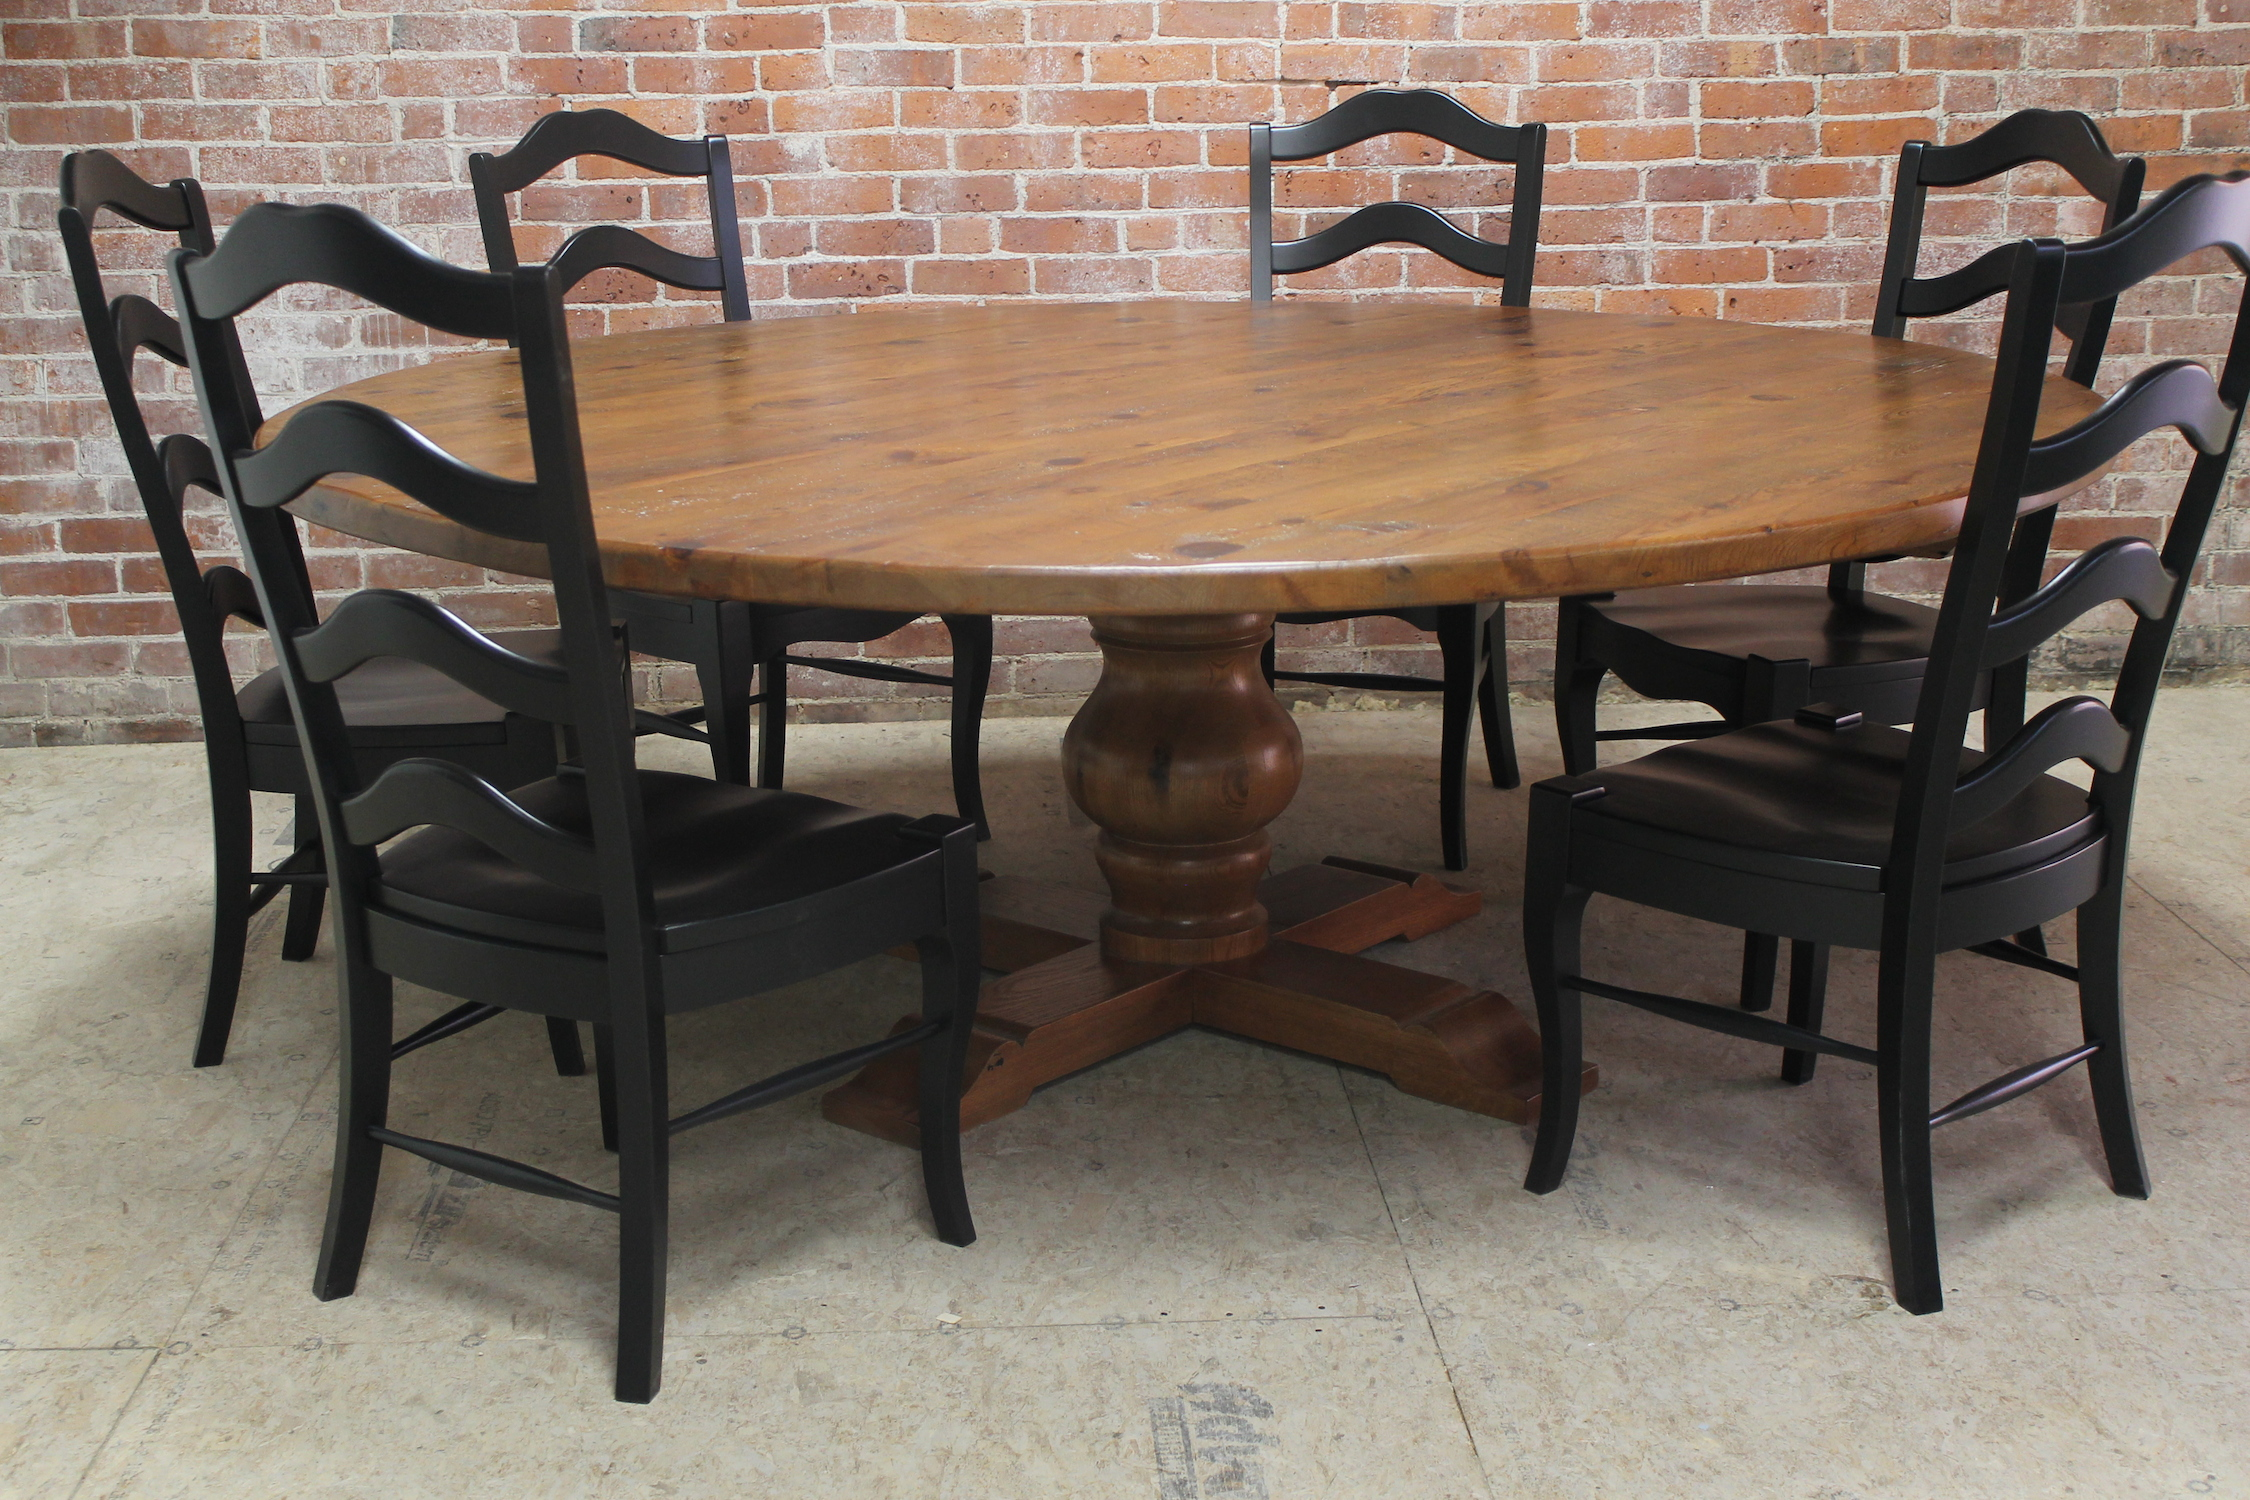 Getting a round dining room table for 6 by your own for How to buy a dining room table